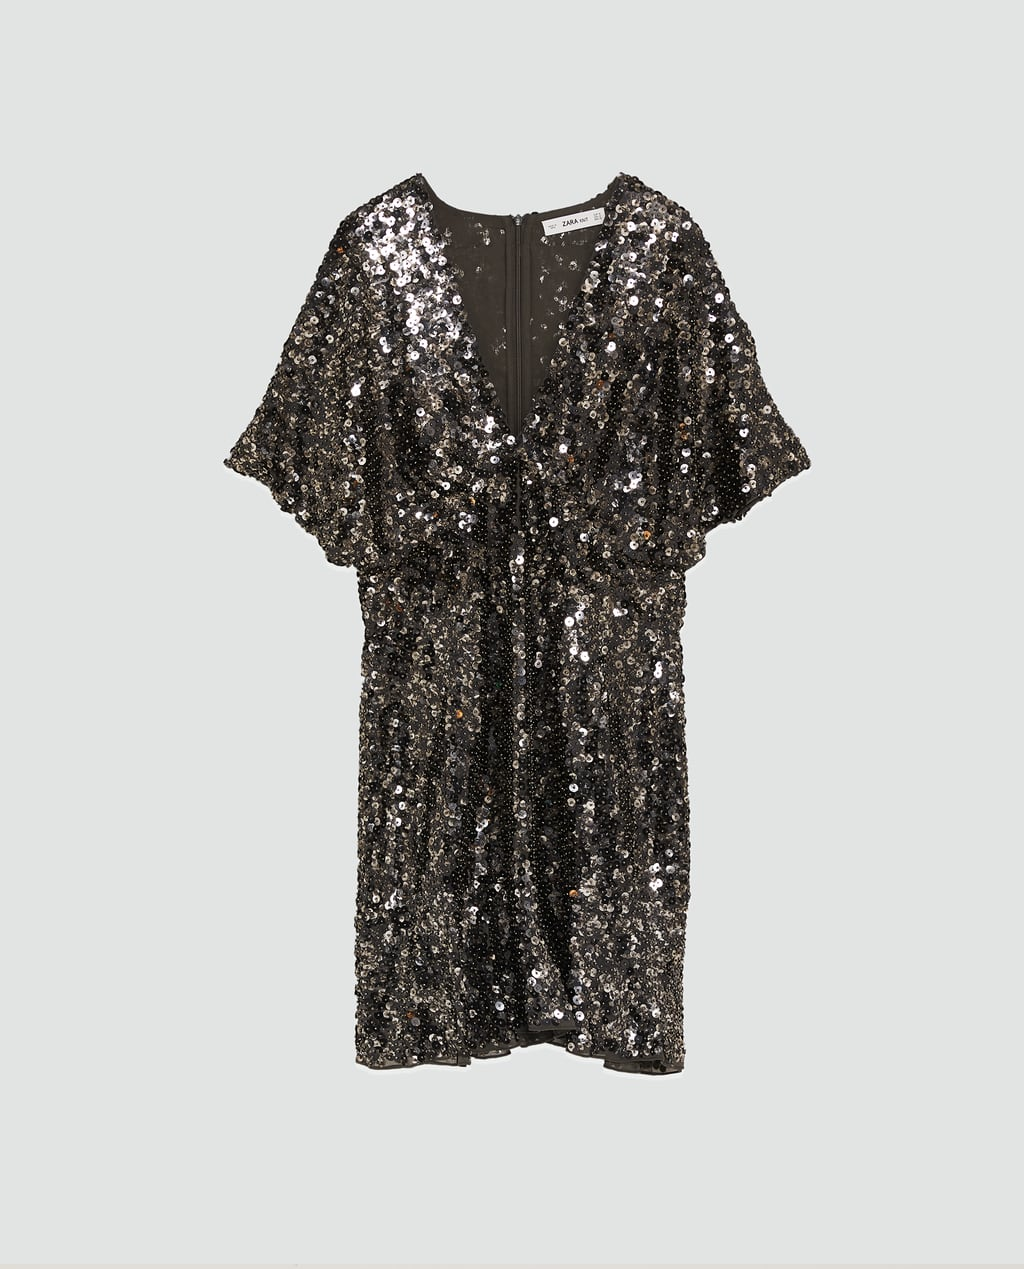 - Short flowing dress with a V-neckline and short sleeves. Features zip fastening in the back hidden in the seam.